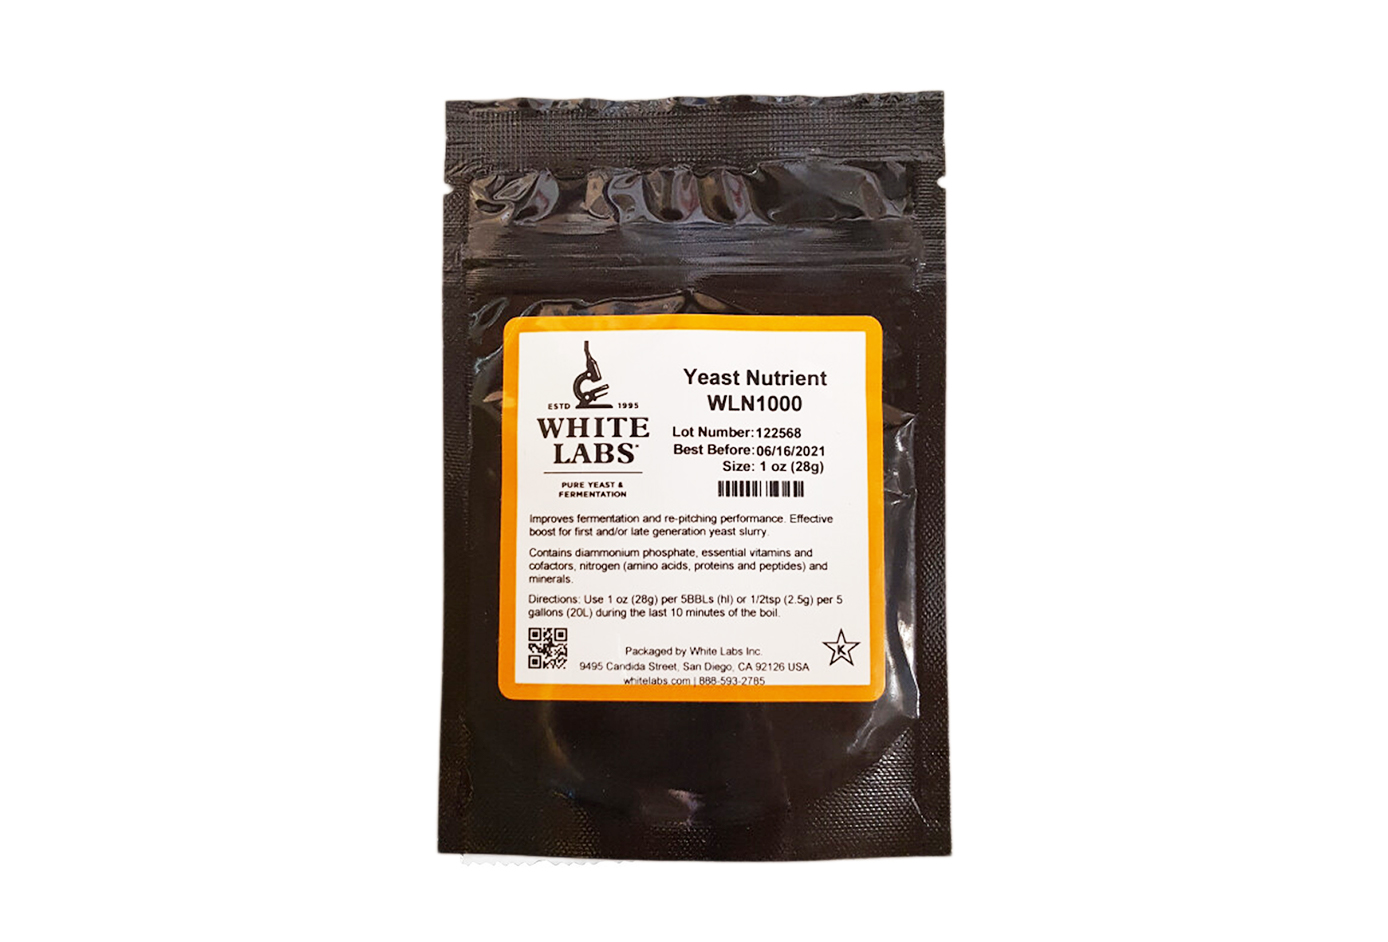 White Labs Yeast Nutrient